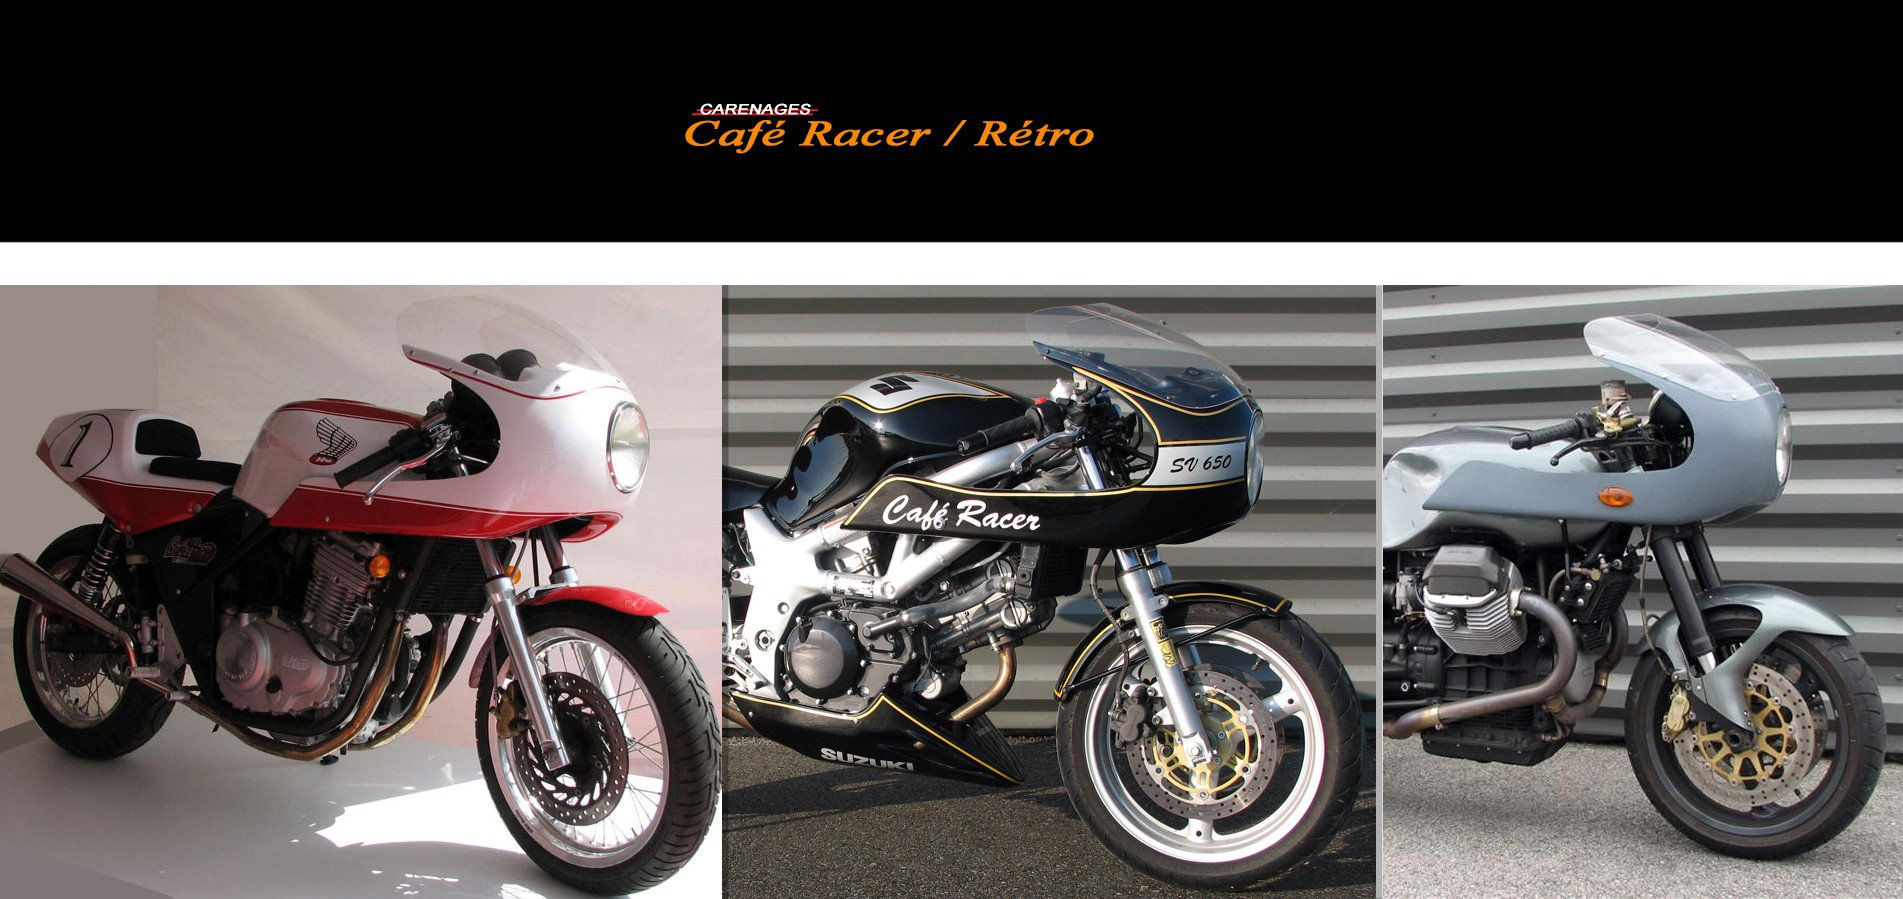 Carenage Double Optique Cafe Racer Bmw